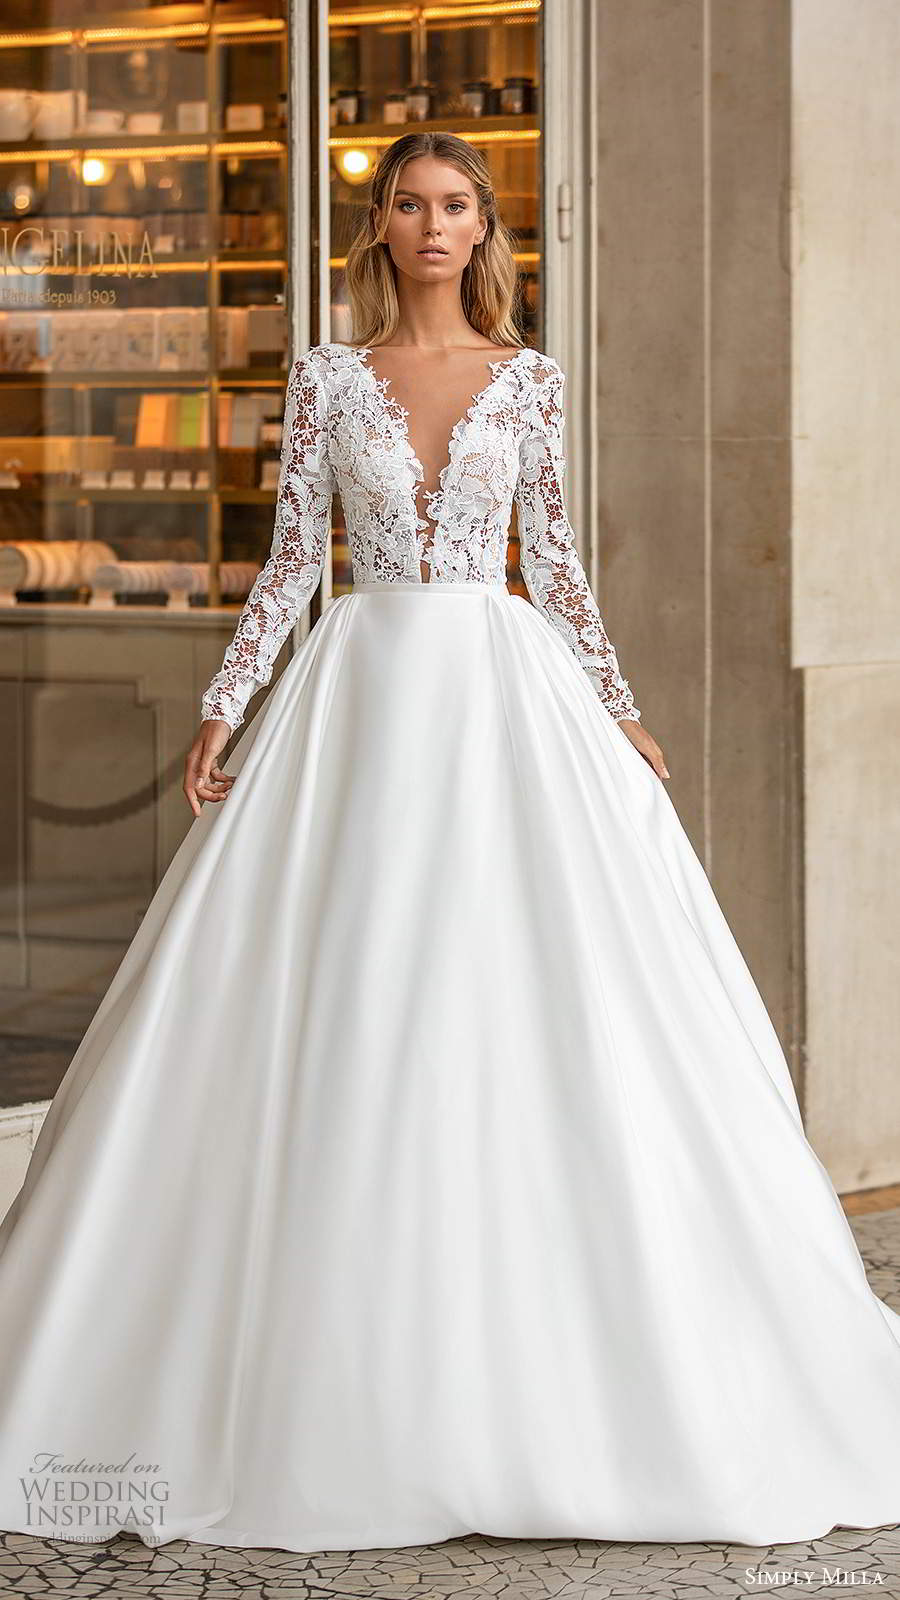 simply milla nova 2020 bridal long sleeves plunging neckline embellished lace bodice clean skirt a line ball gown wedding dress chapel train (5) mv